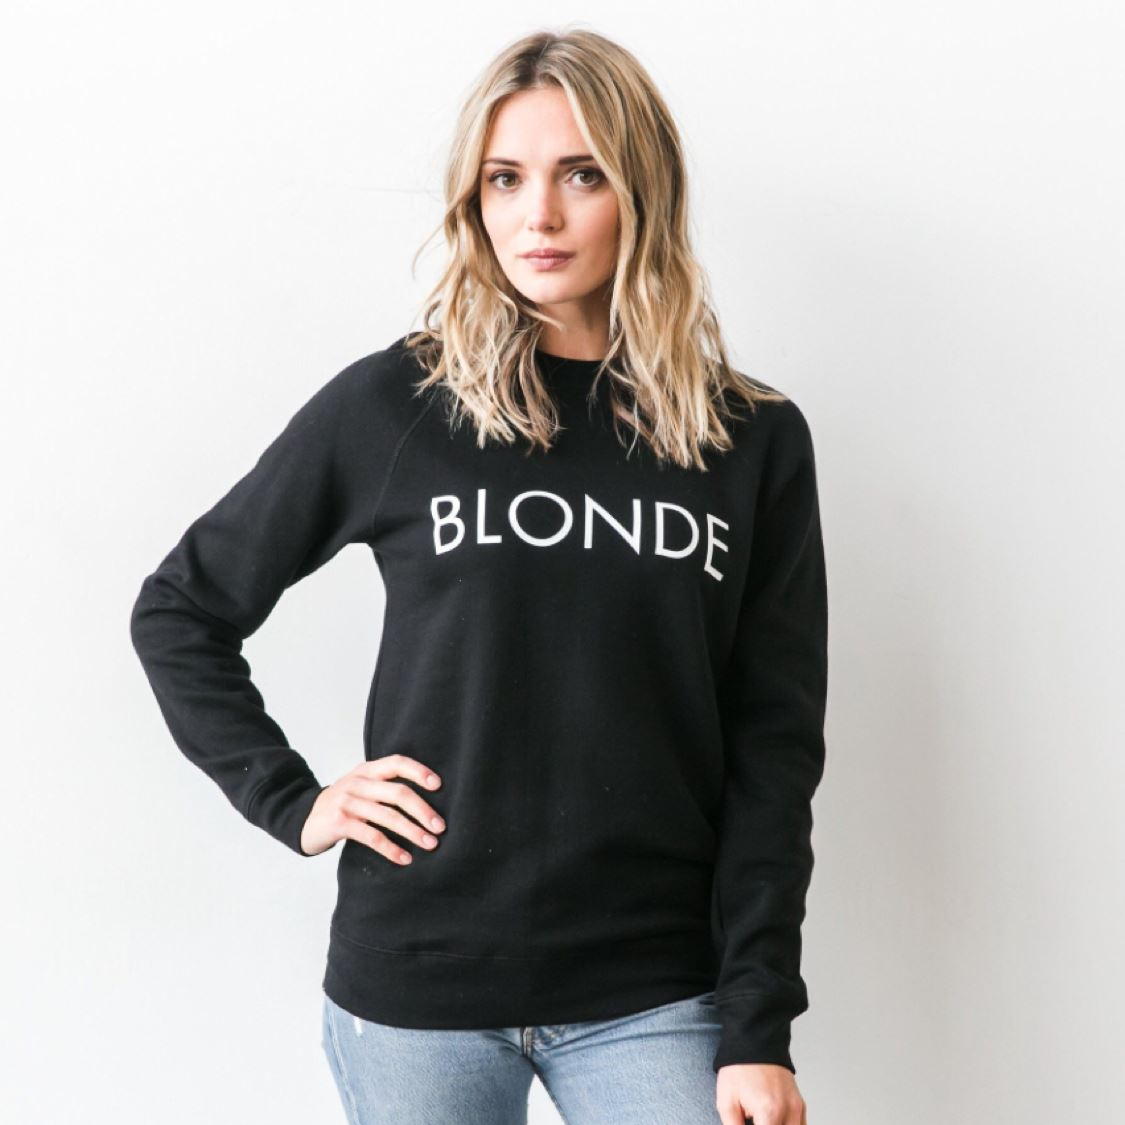 Brunette the Label - Blonde Black Crewneck Sweatshirt Sweatshirt Brunette the Label